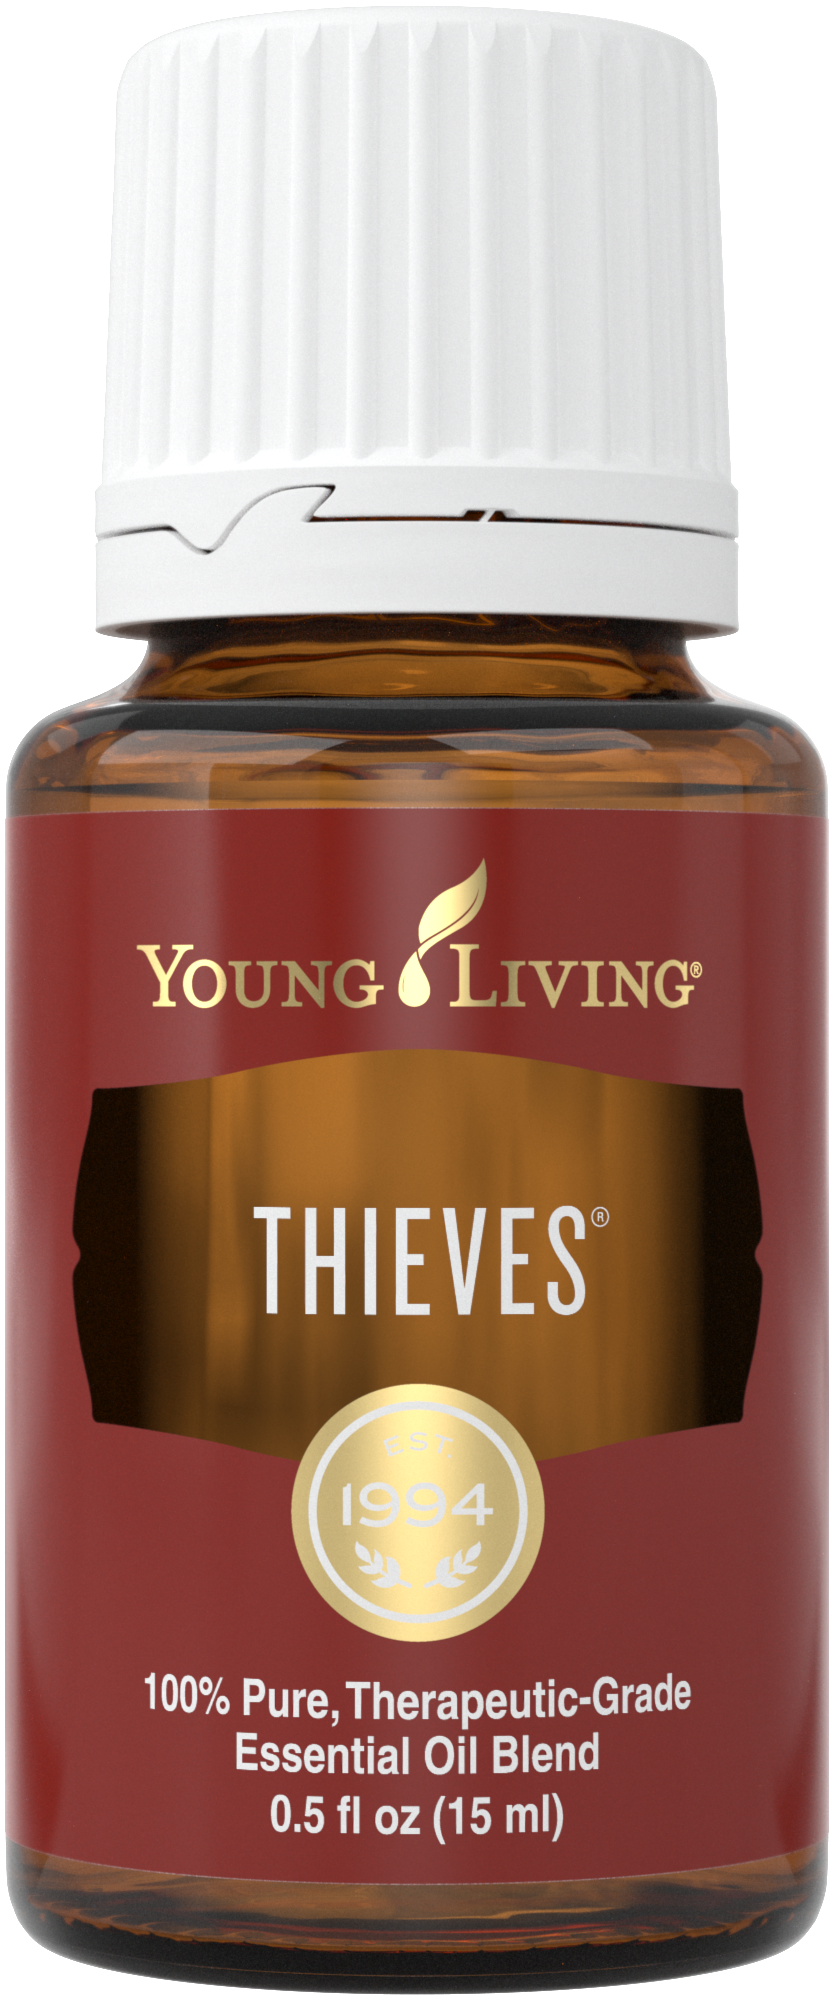 Thieves Essential Oil by Young Living